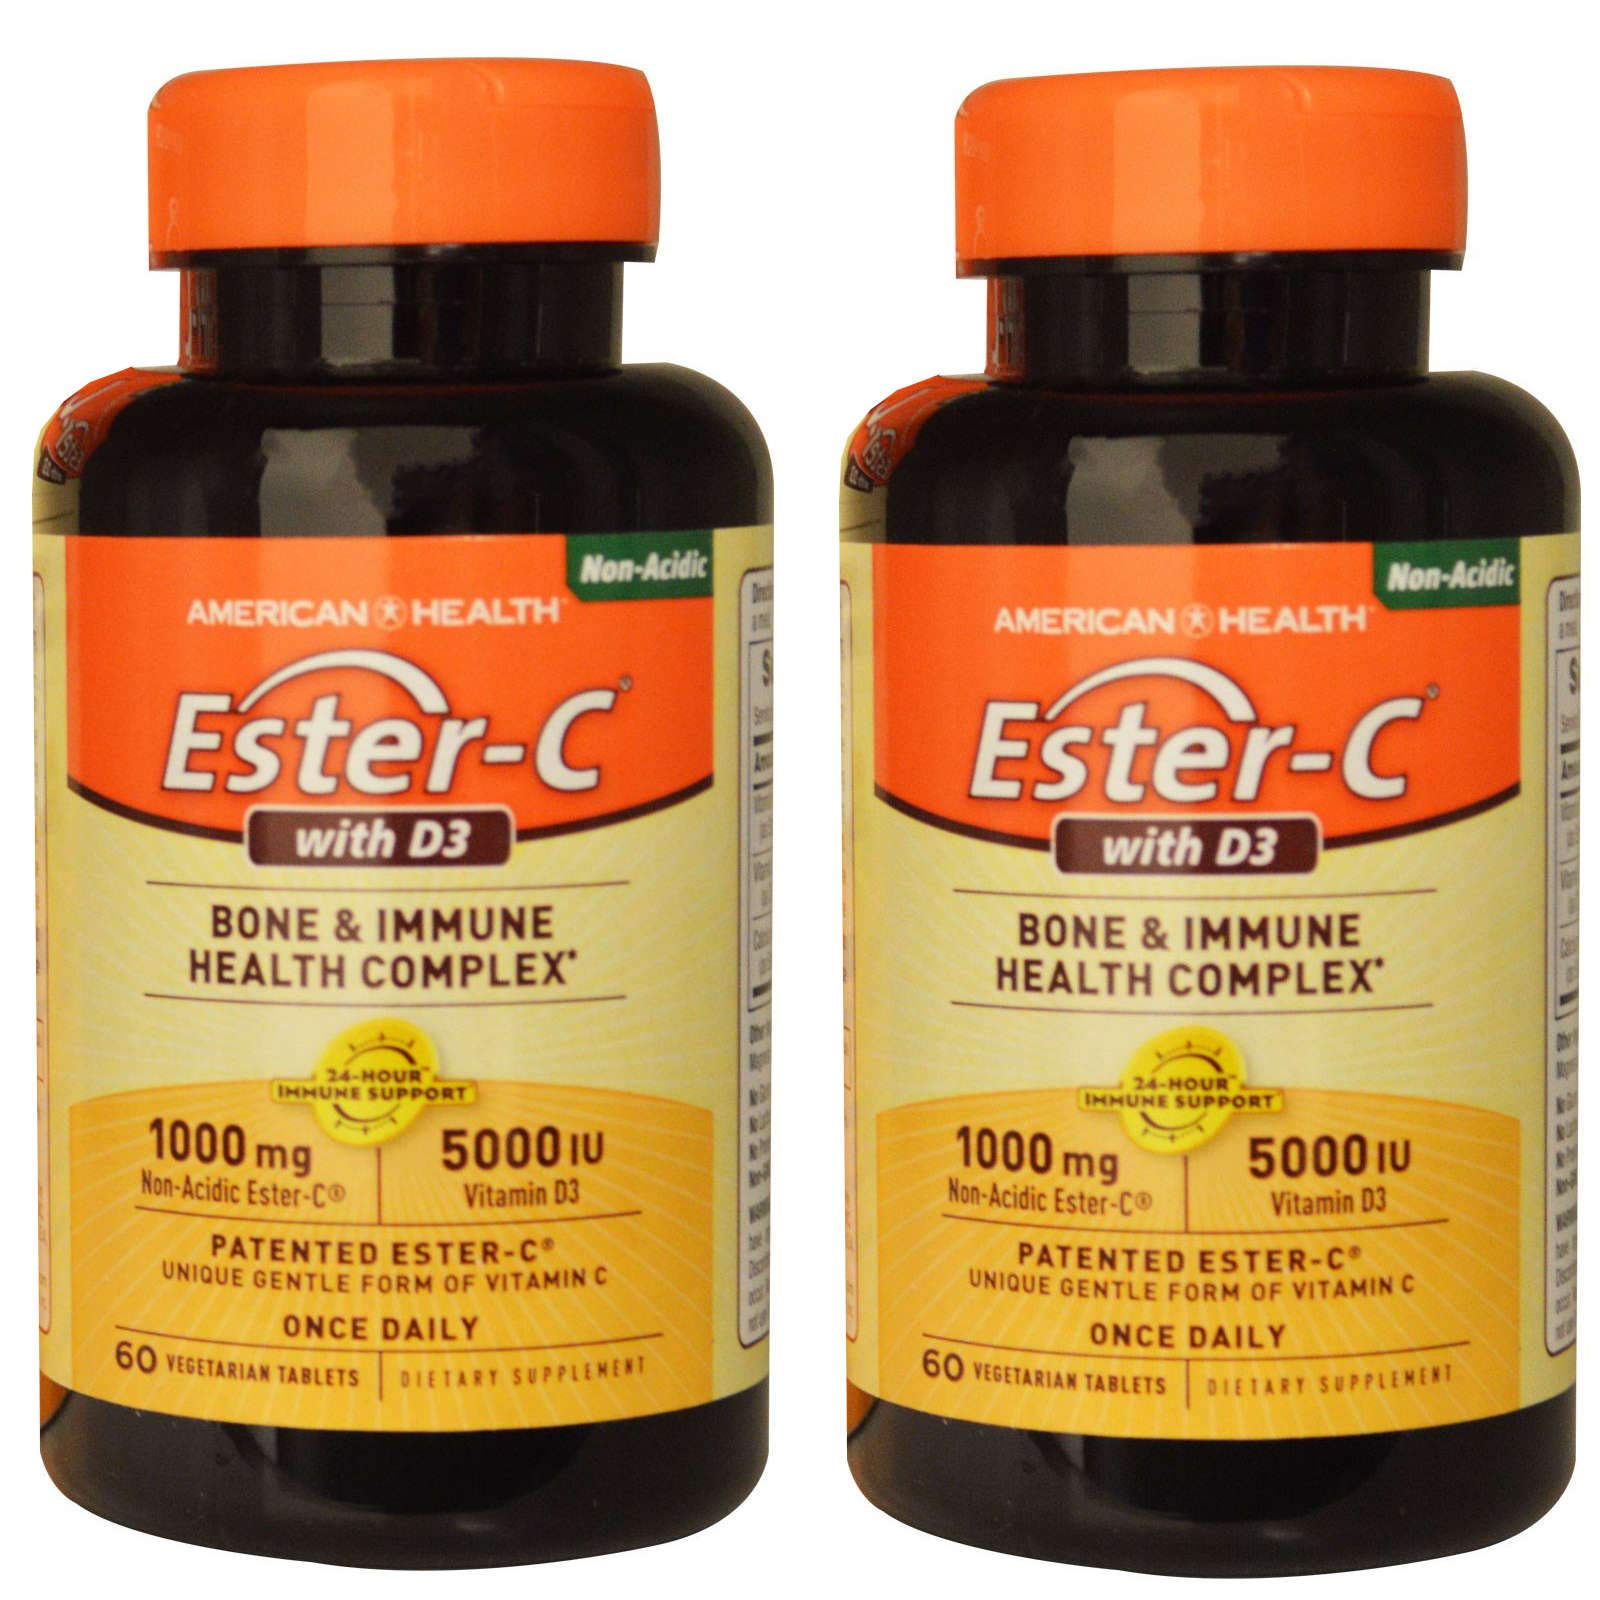 Ester-C with D3 Bone and Immune Health Complex with 1000 Milligrams of Non-Acidic, Patented Ester-C and 5000 IU of Vitamin D3 in a Unique, Gentle, Once Daily Form (60 Vegetarian Tablets) Pack of 2